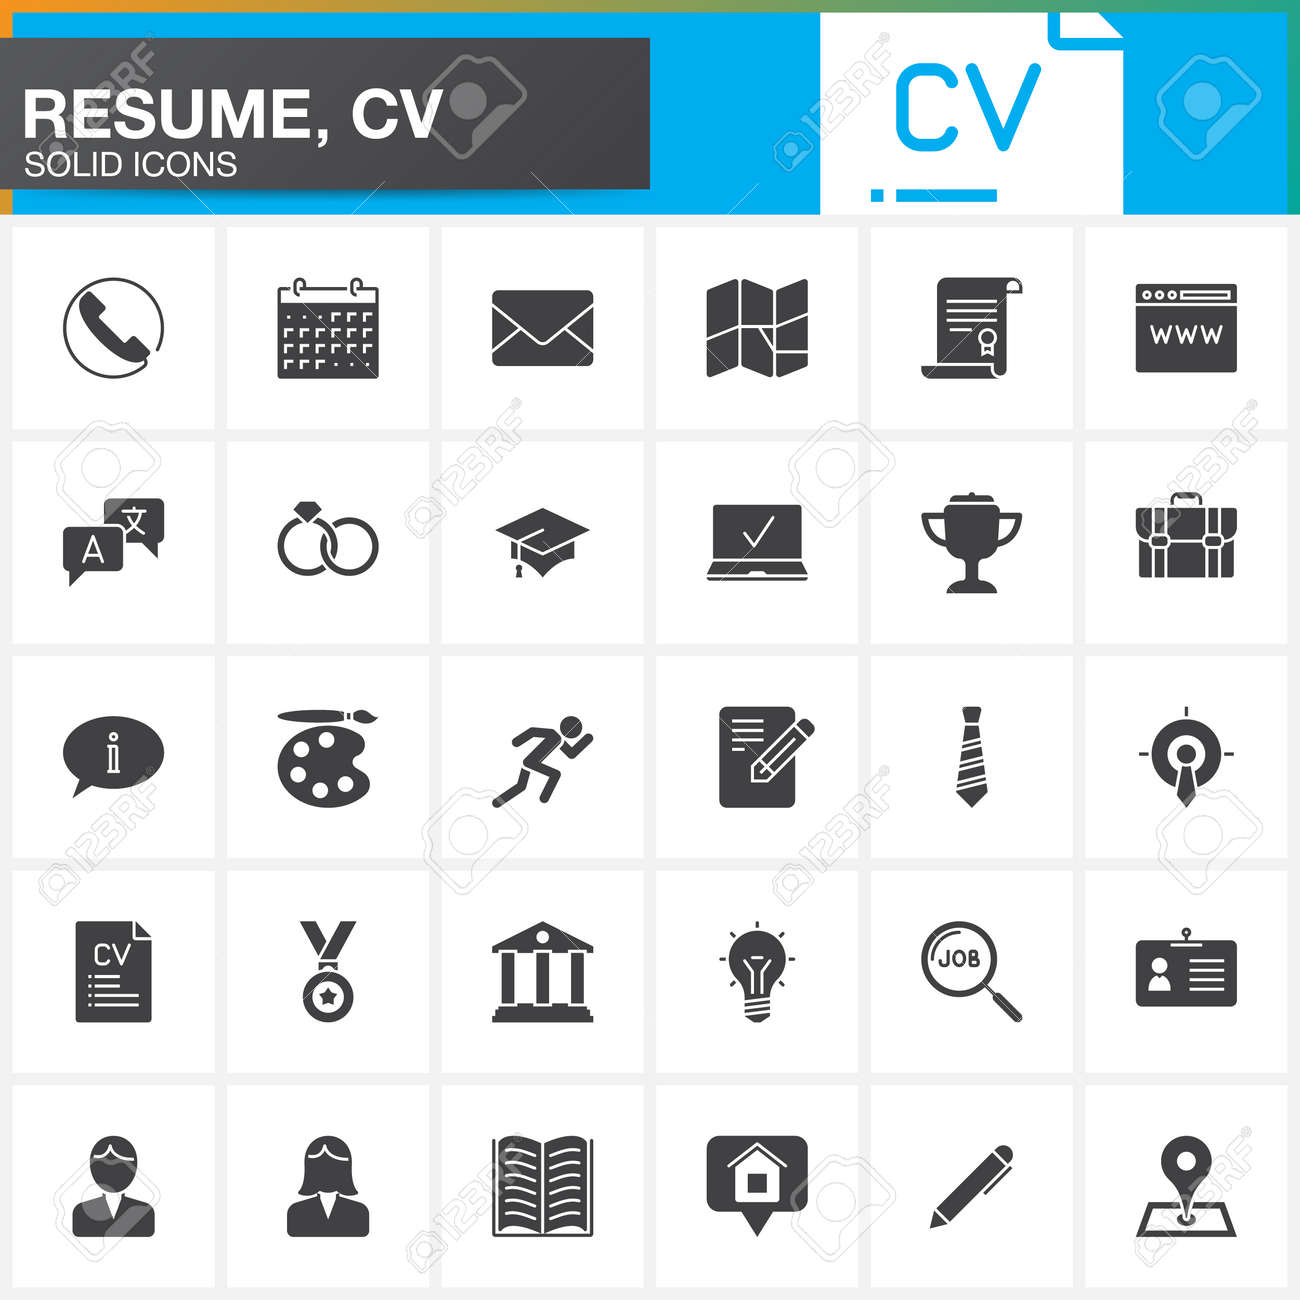 vector icons set for resume or cv. modern solid symbol collection